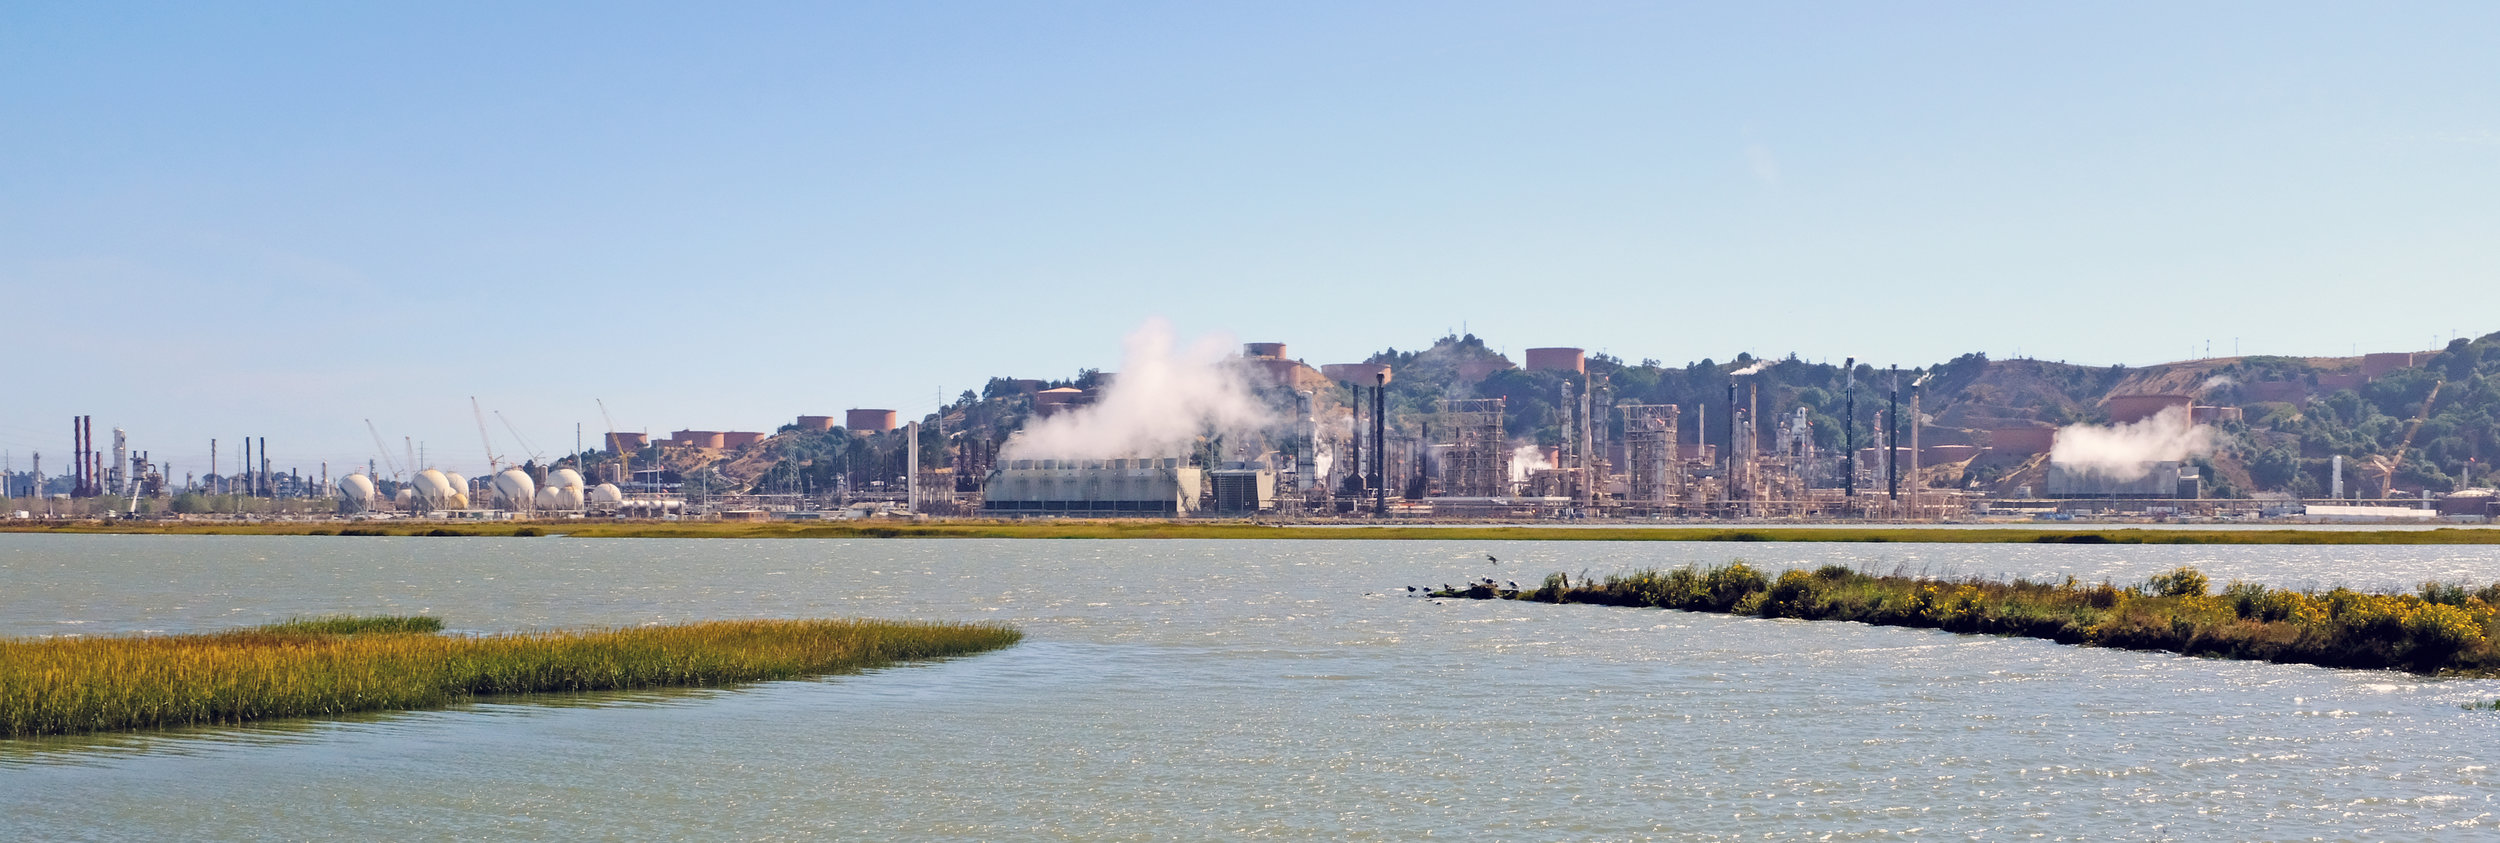 Chevron_Richmond_Refinery_view_from_Bay_Trail,_August_2017.jpg